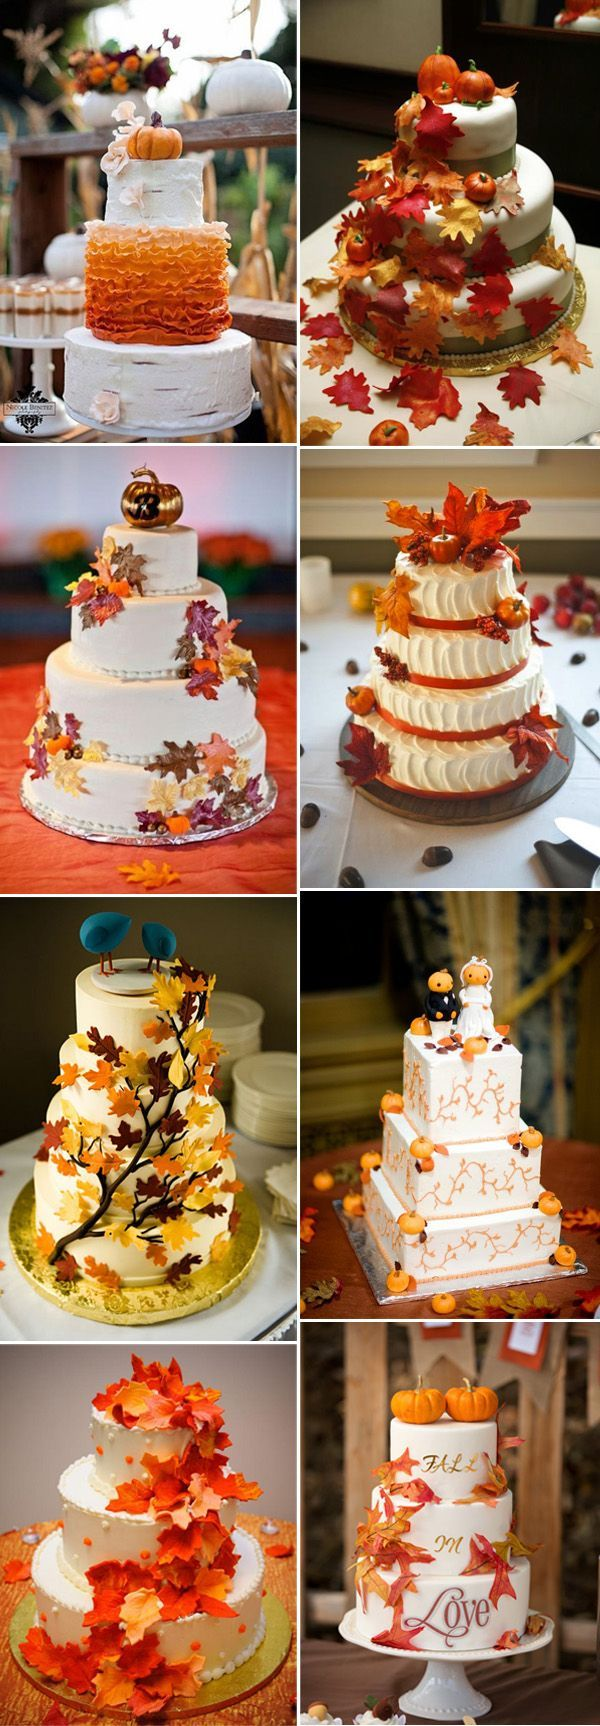 Wedding decorations at church november 2018  best Fall Wedding Trends  Sugar Creek images on Pinterest